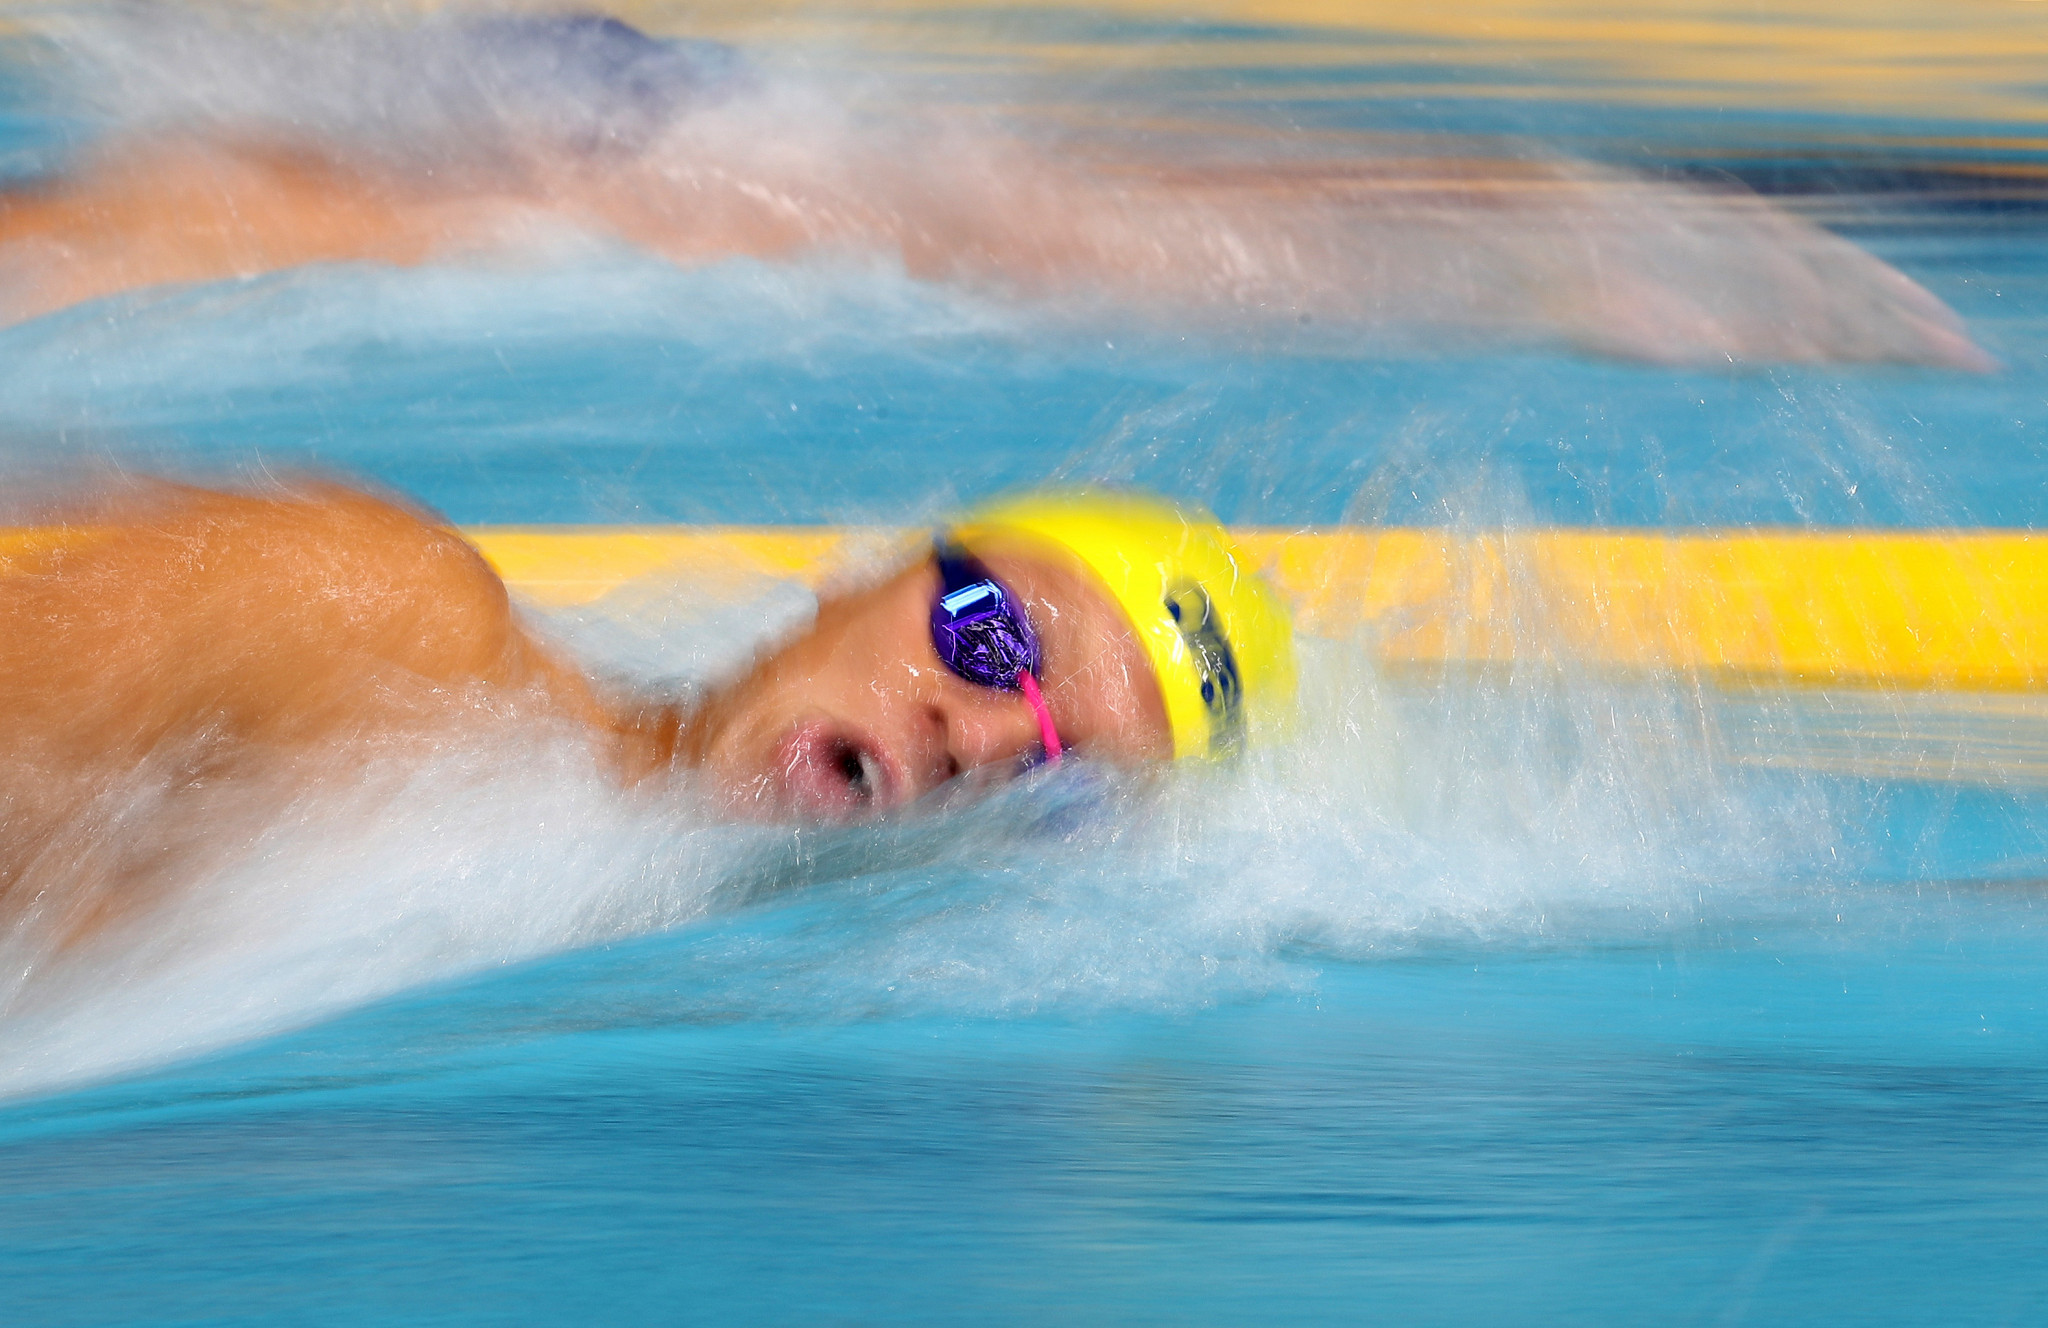 Johansson plays down Olympic chances after winning long-distance swimming gold in Naples